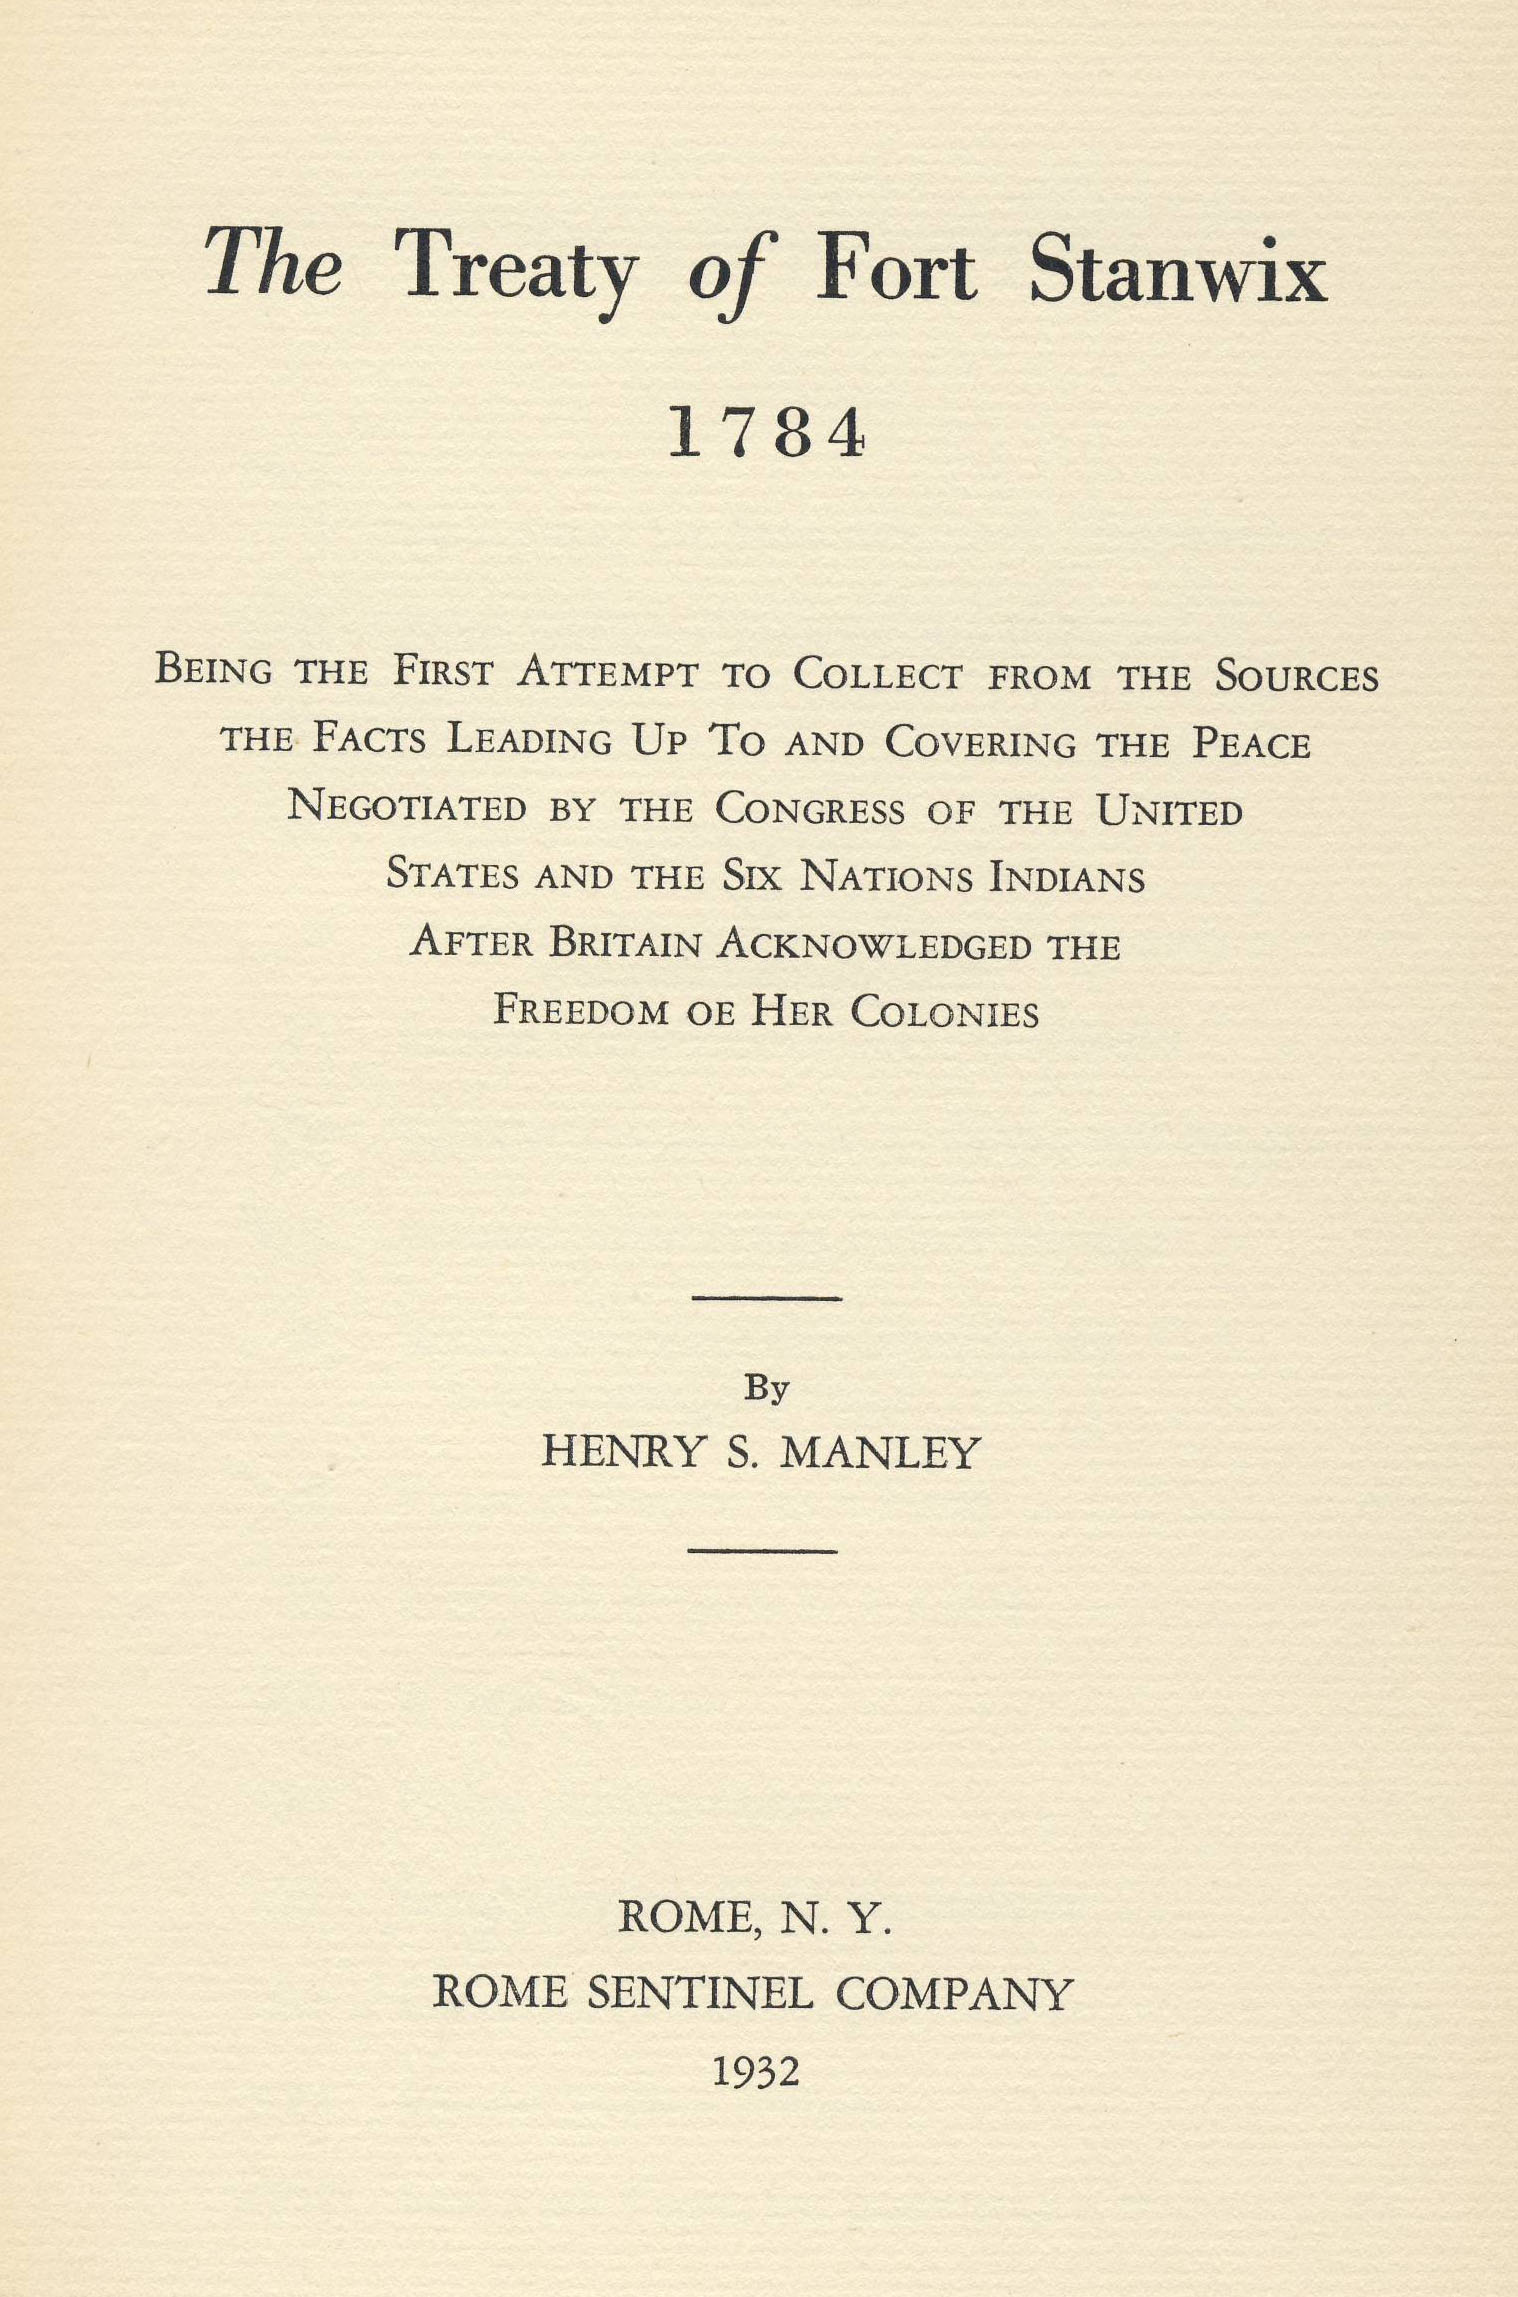 a yellowing page in center block print. in bold: THE TREATY OF FORT STANWIX...By H.S. Manley